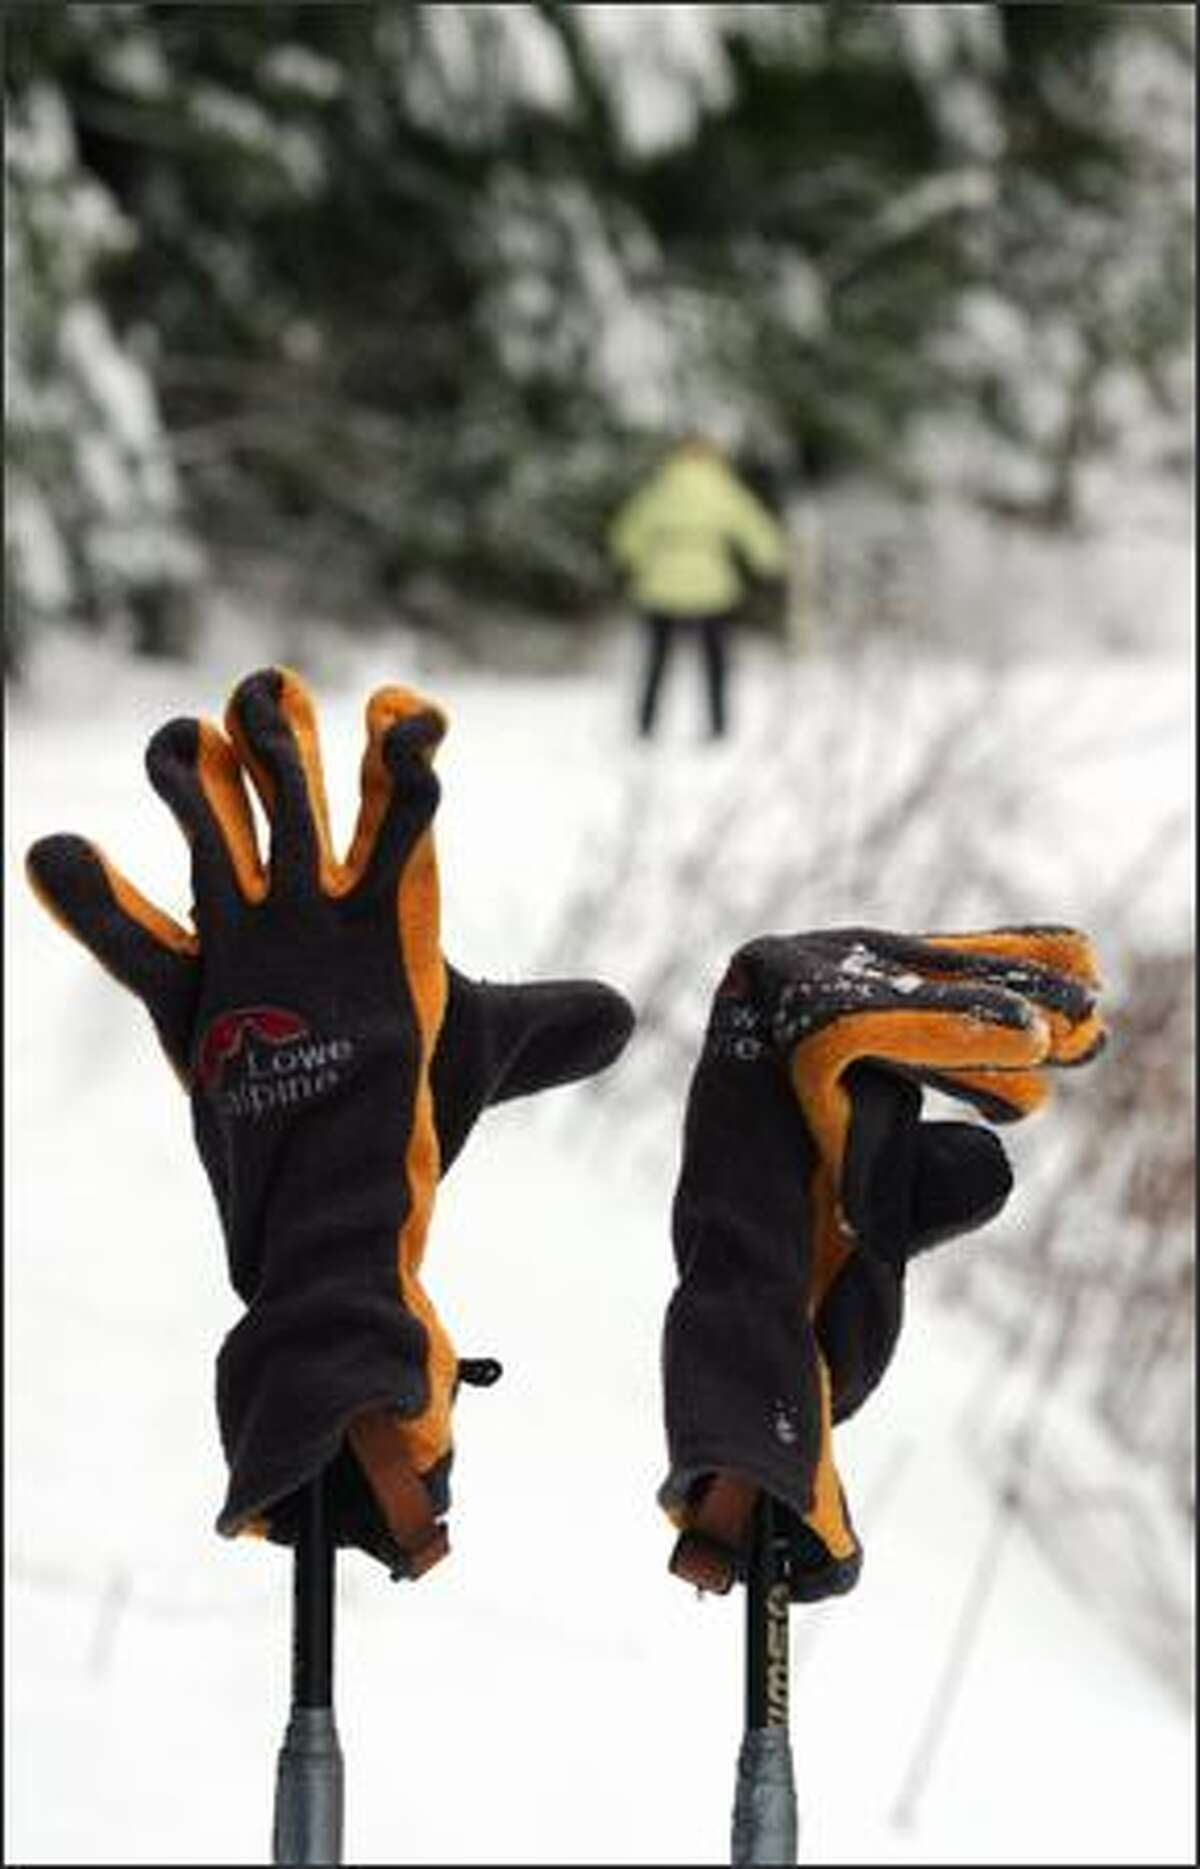 A skier's gloves rest on ski poles during a cross country ski and snow shoe trip with the One World Outing Club near Stevens Pass.